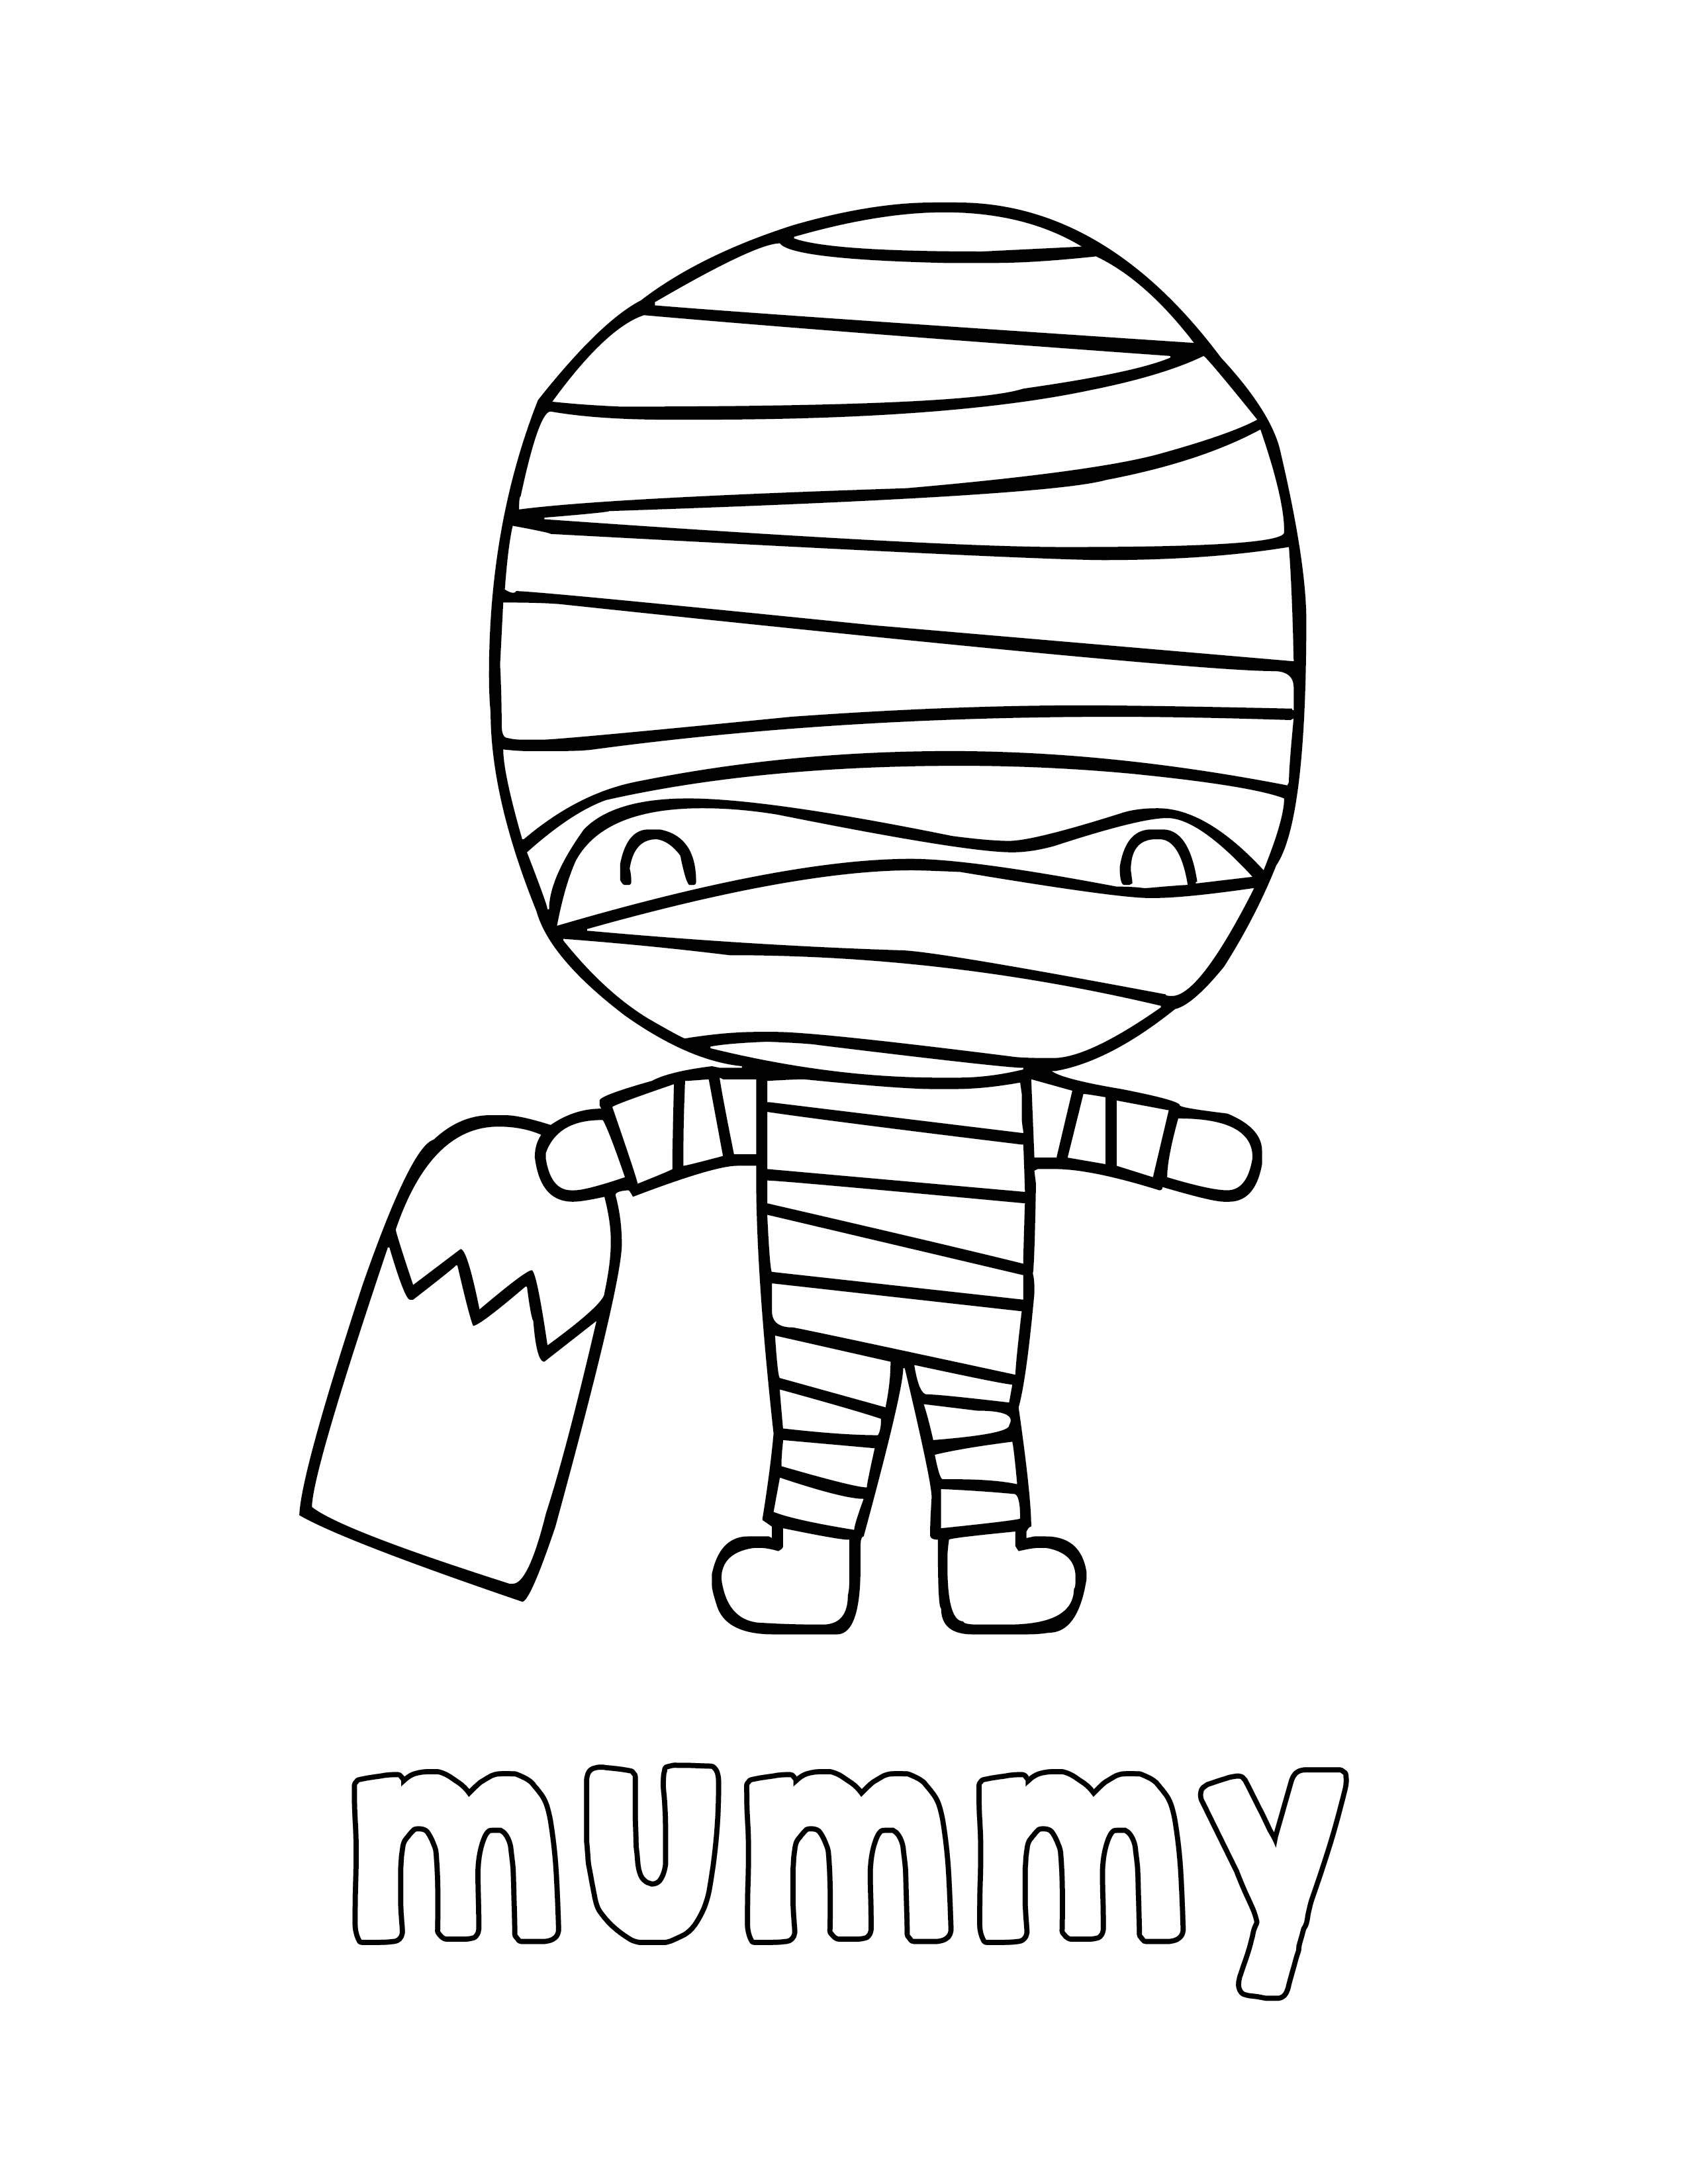 - Halloween Coloring Pages For Kids - Print And Color